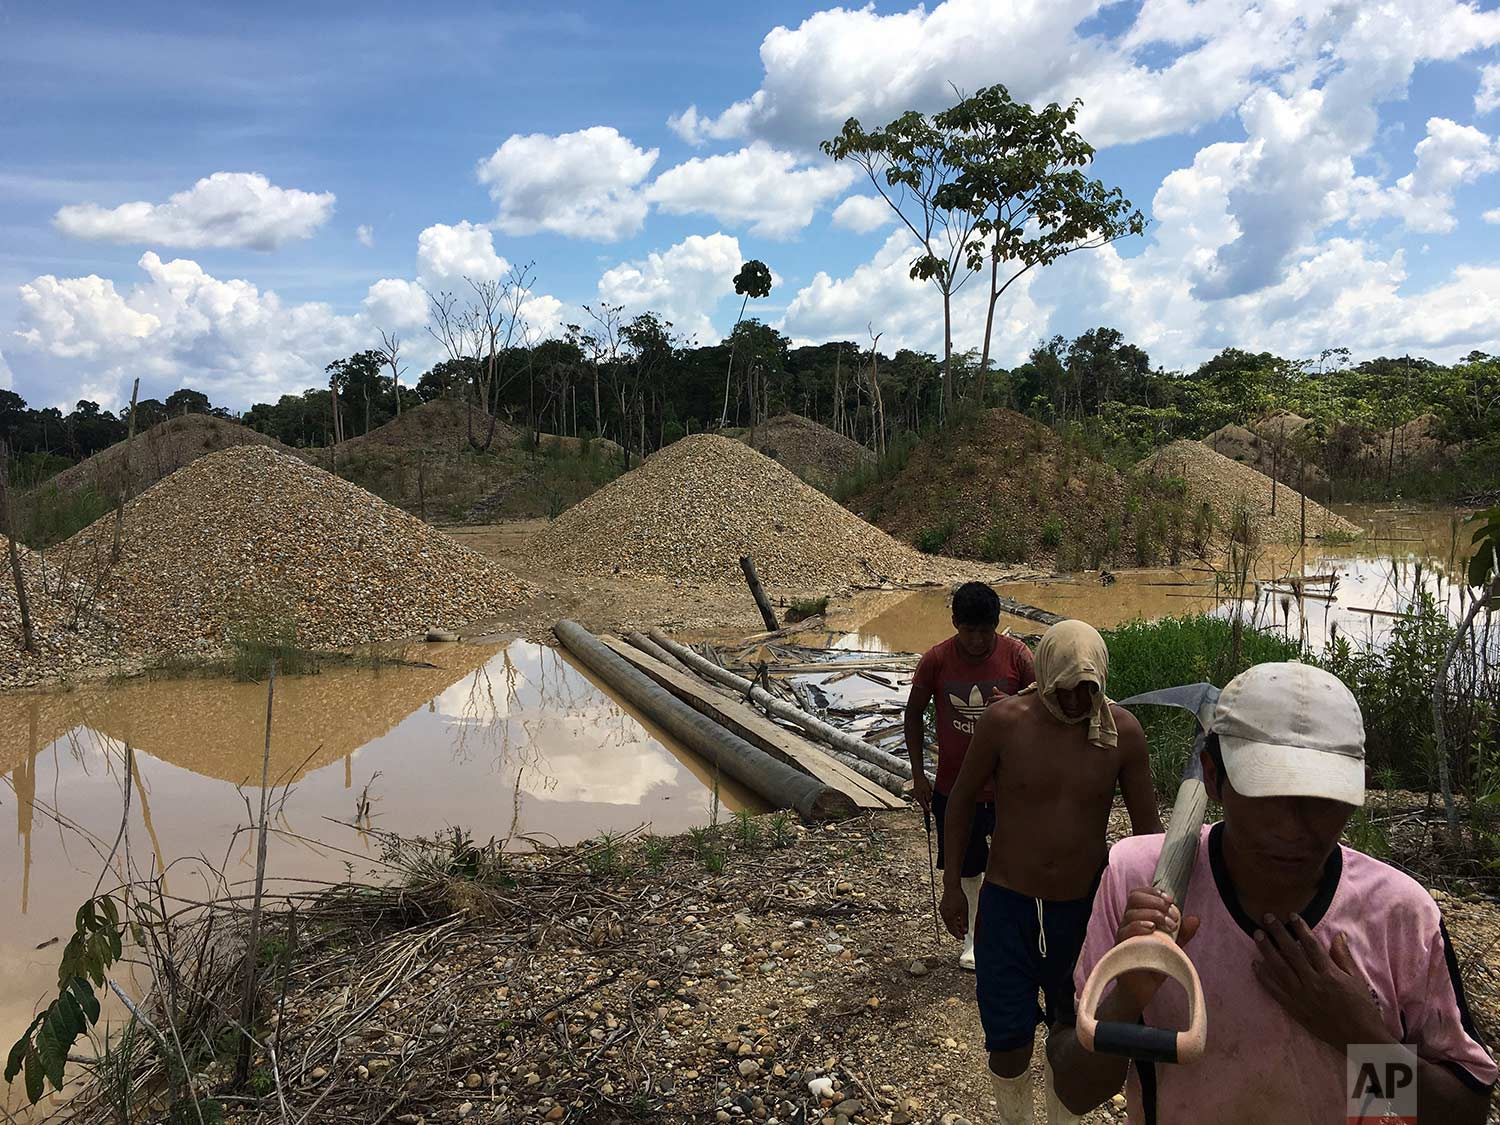 In this Jan. 9, 2018 photo, illegal gold miners walk in a mining camp in Boca Colorado, part of Peru's Madre de Dios province in the Amazon. It's near this forlorn corner of the Amazon that Pope Francis will visit Friday, Jan. 19, amid what has been called a modern-day gold rush of illegal miners threatening the world's largest rainforest. (AP Photo/Rodrigo Abd) |  See these photos on AP Images